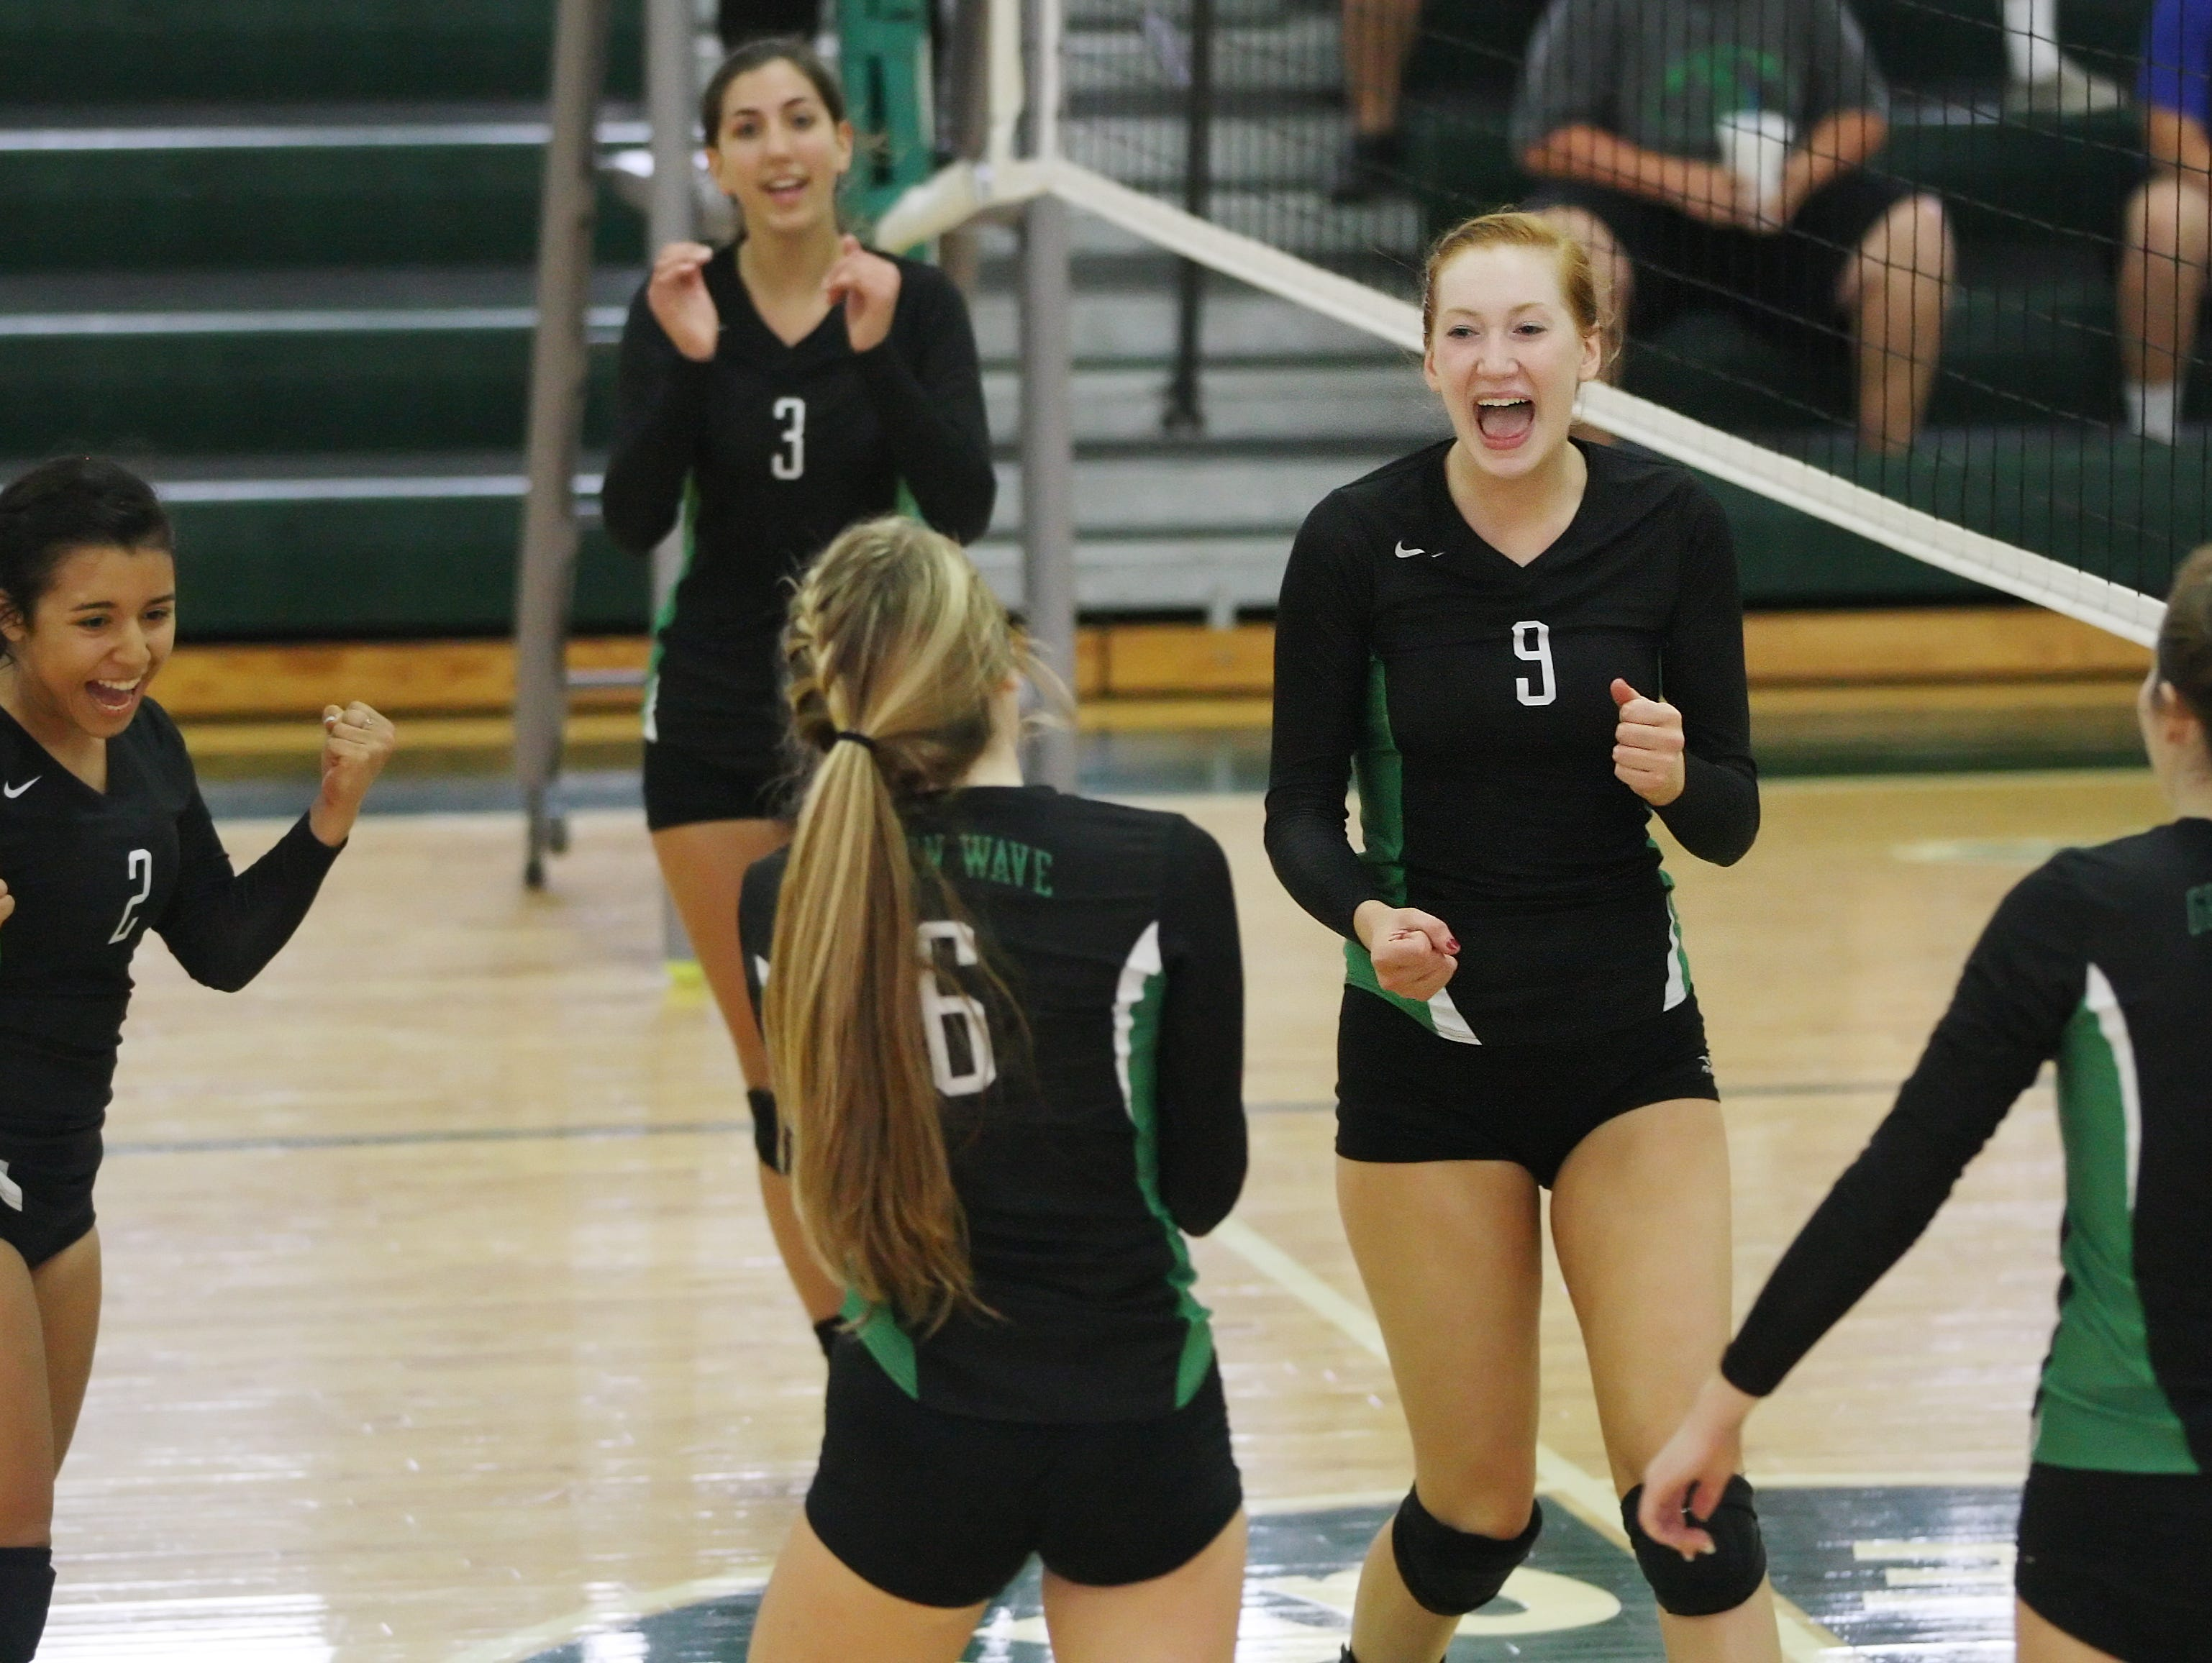 Fort Myers High School's Kaitlin Stewart, second from right, celebrates scoring a point against Barron Collier in the Region 6A-3 semifinal volleyball game Saturday at Fort Myers High School. Fort Myers beat Barron Collier 3-0.